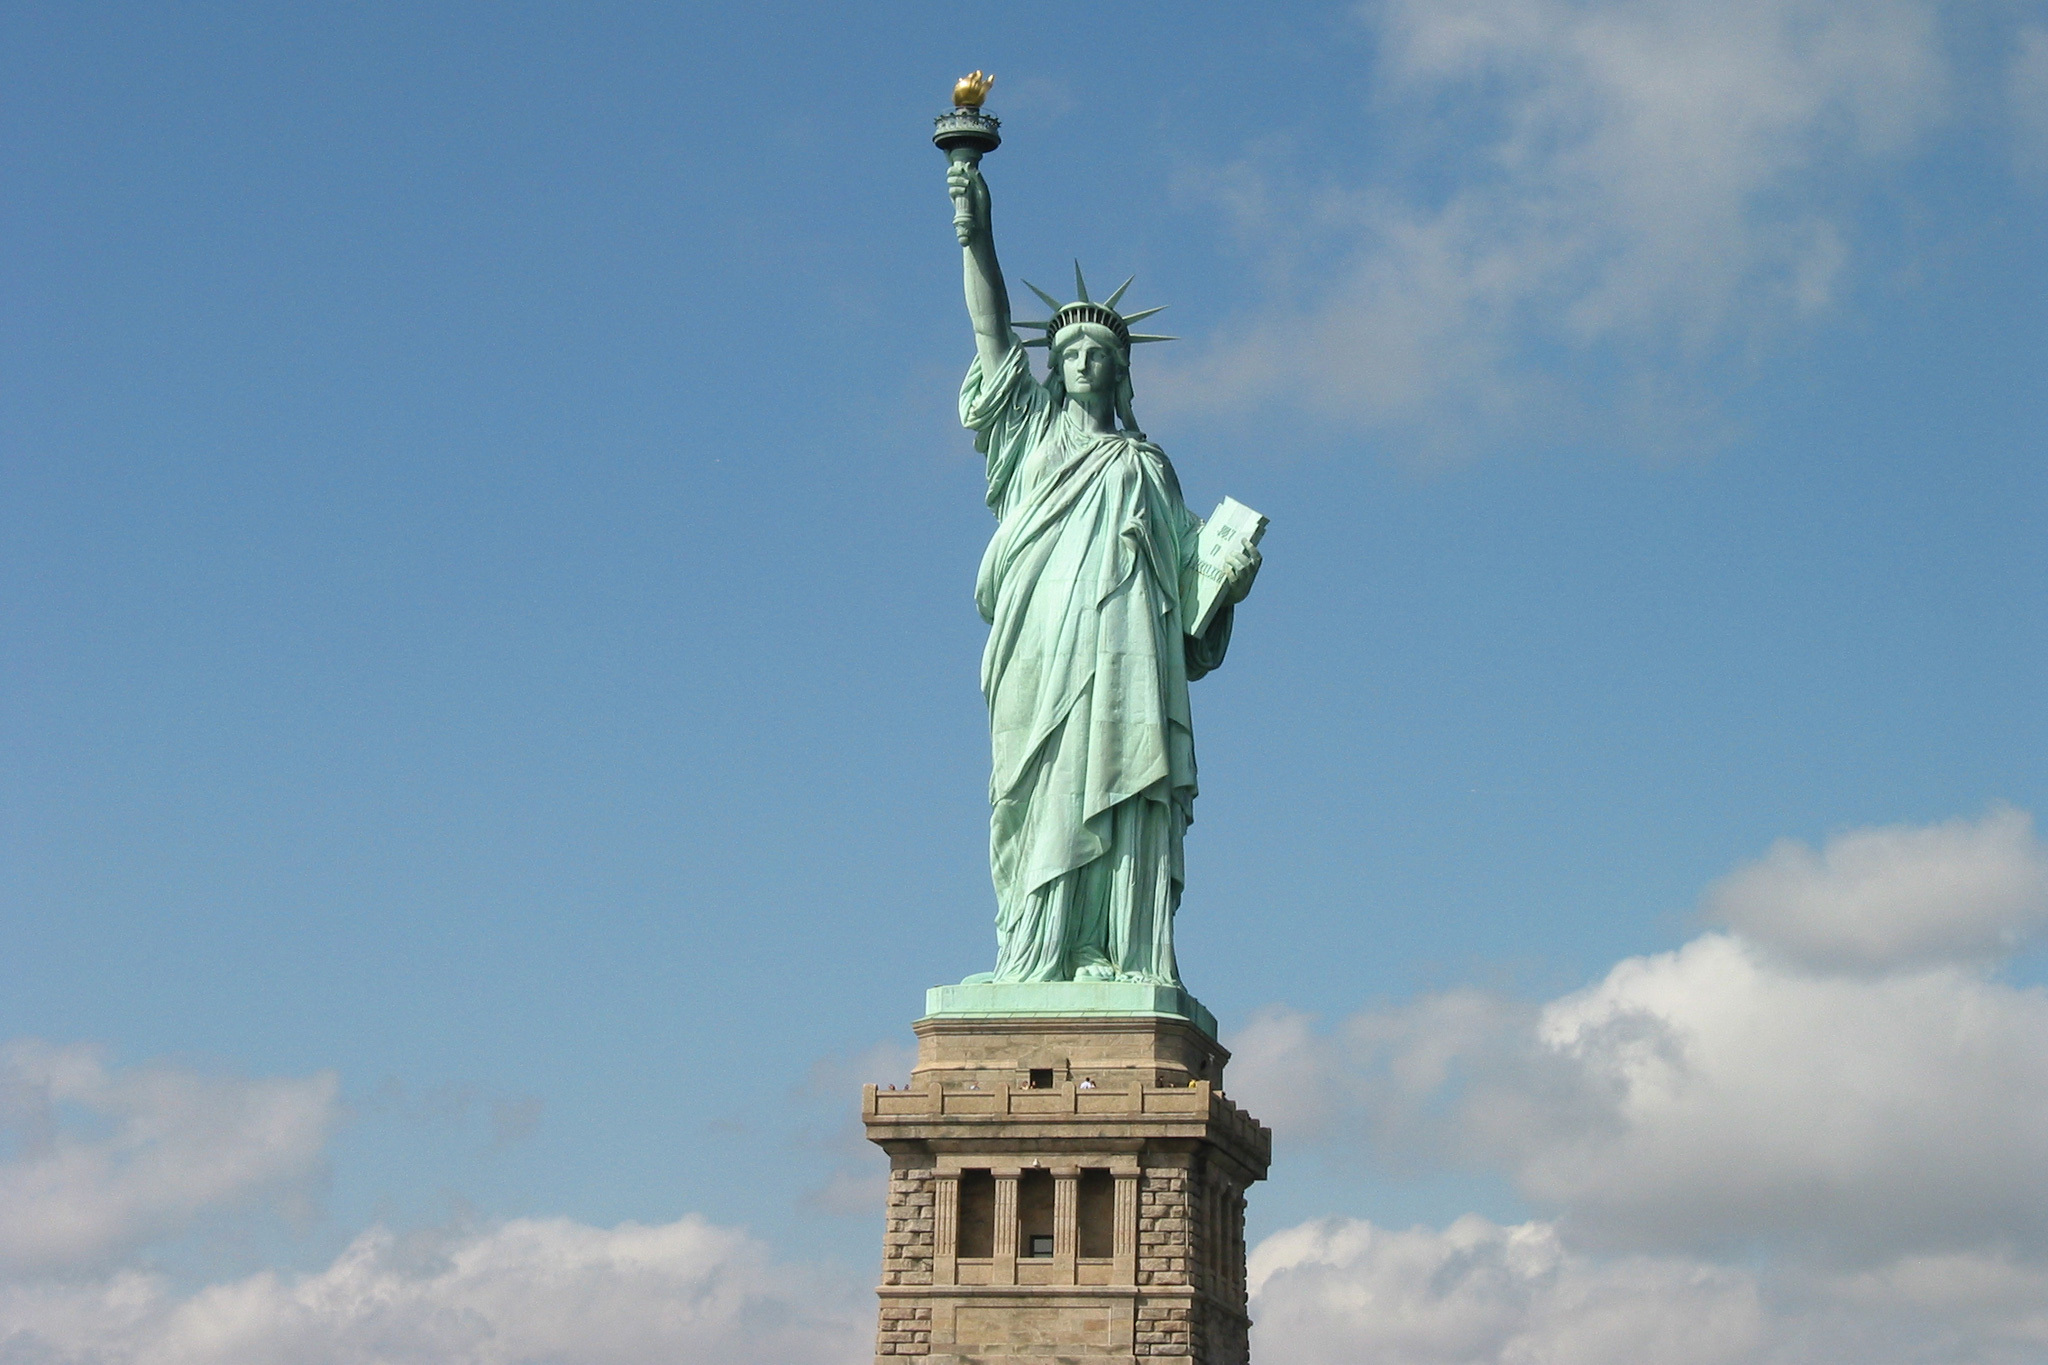 Best new york attractions for locals and tourists alike the statue of liberty biocorpaavc